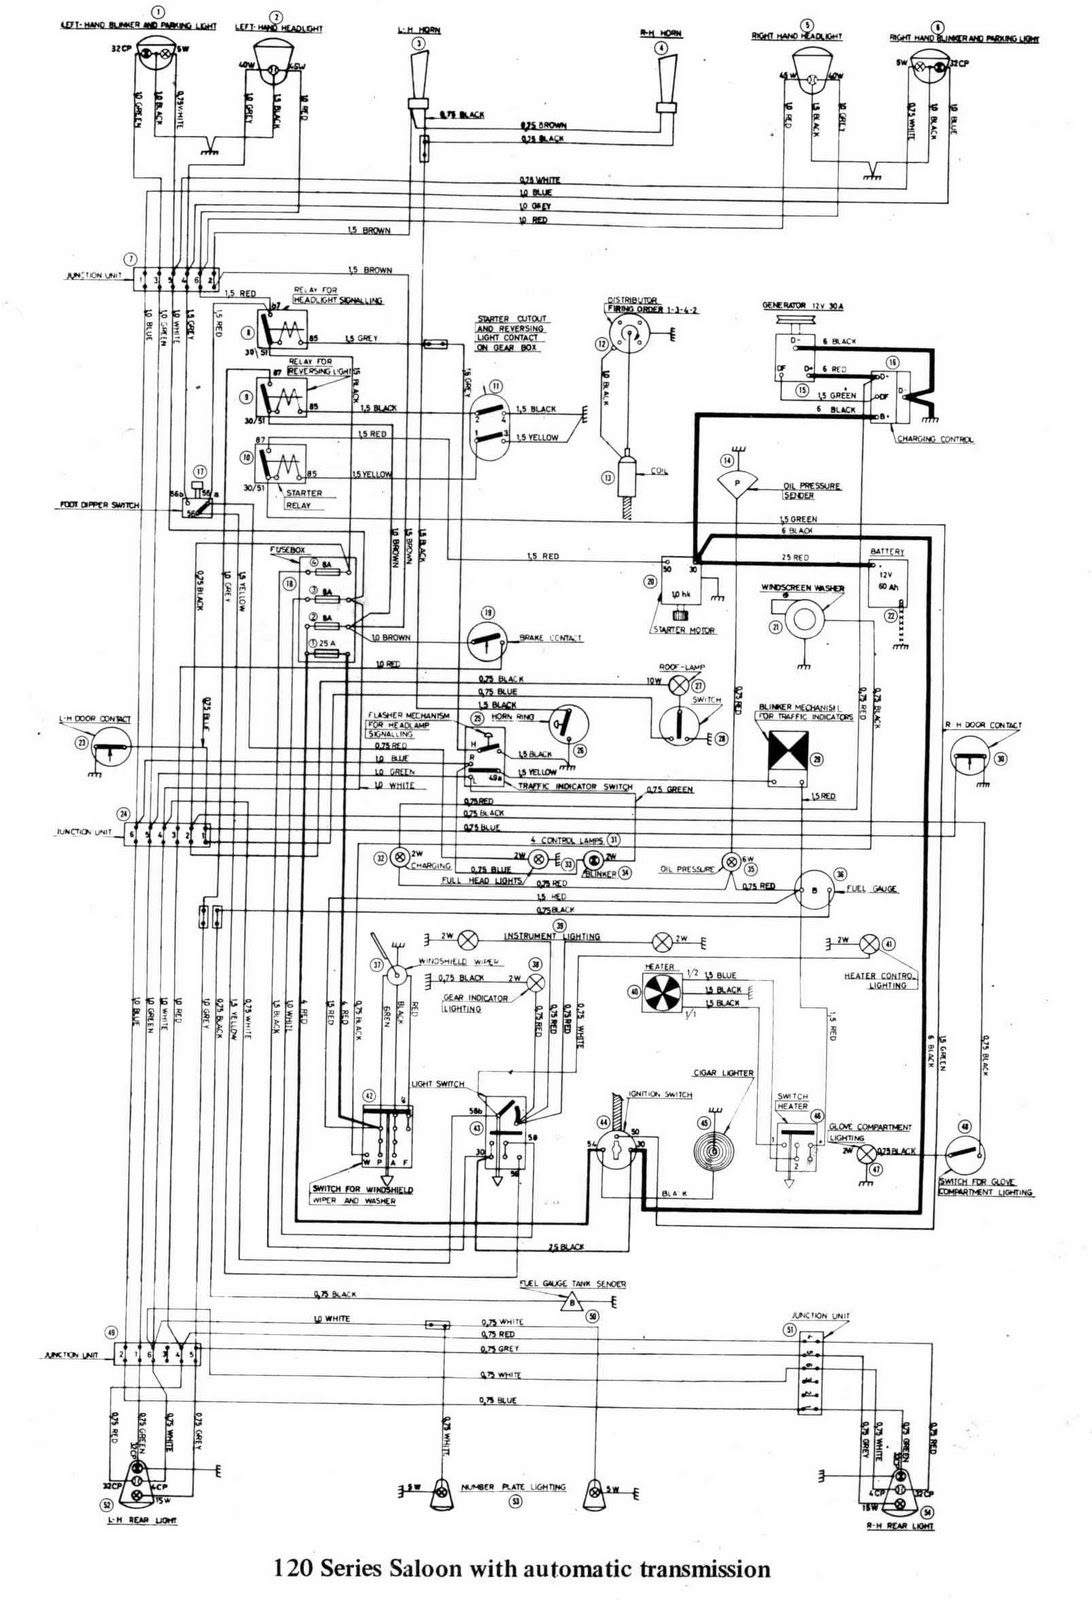 Volvo 122 Alternator Wiring Diagram - Wiring Diagram Server cow-collect -  cow-collect.ristoranteitredenari.it | Volvo C70 Alternator Wiring Diagram |  | Ristorante I Tre Denari Manerbio